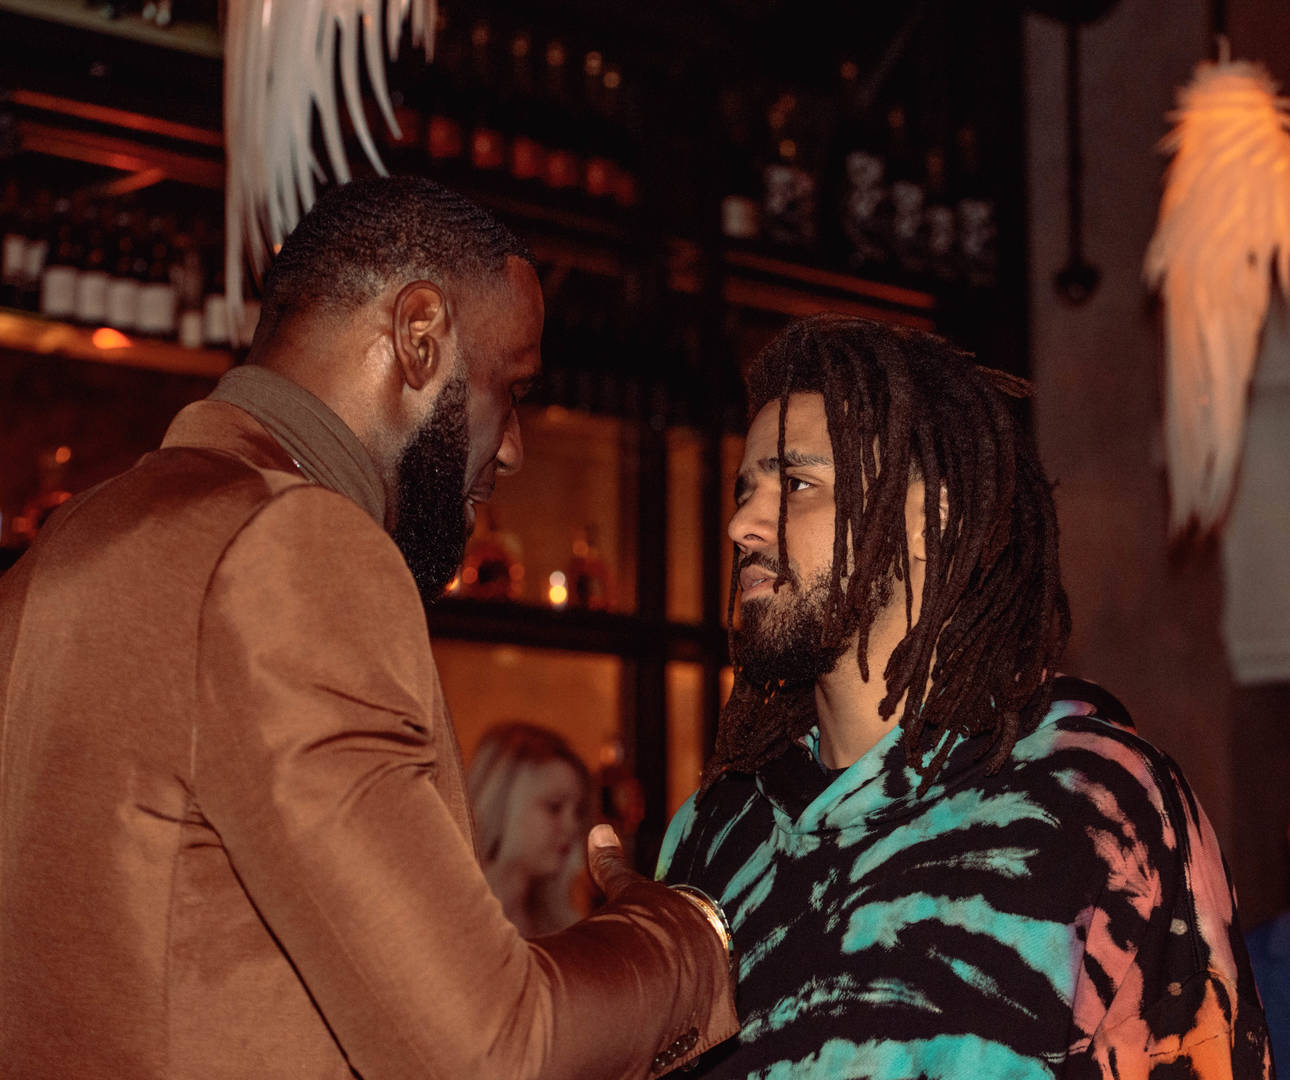 LeBron James and J.Cole attend the Klutch 2019 All Star Weekend Dinner Presented by Remy Martin and hosted by Klutch Sports Group at 5Church on February 16, 2019 in Charlotte, North Carolina.